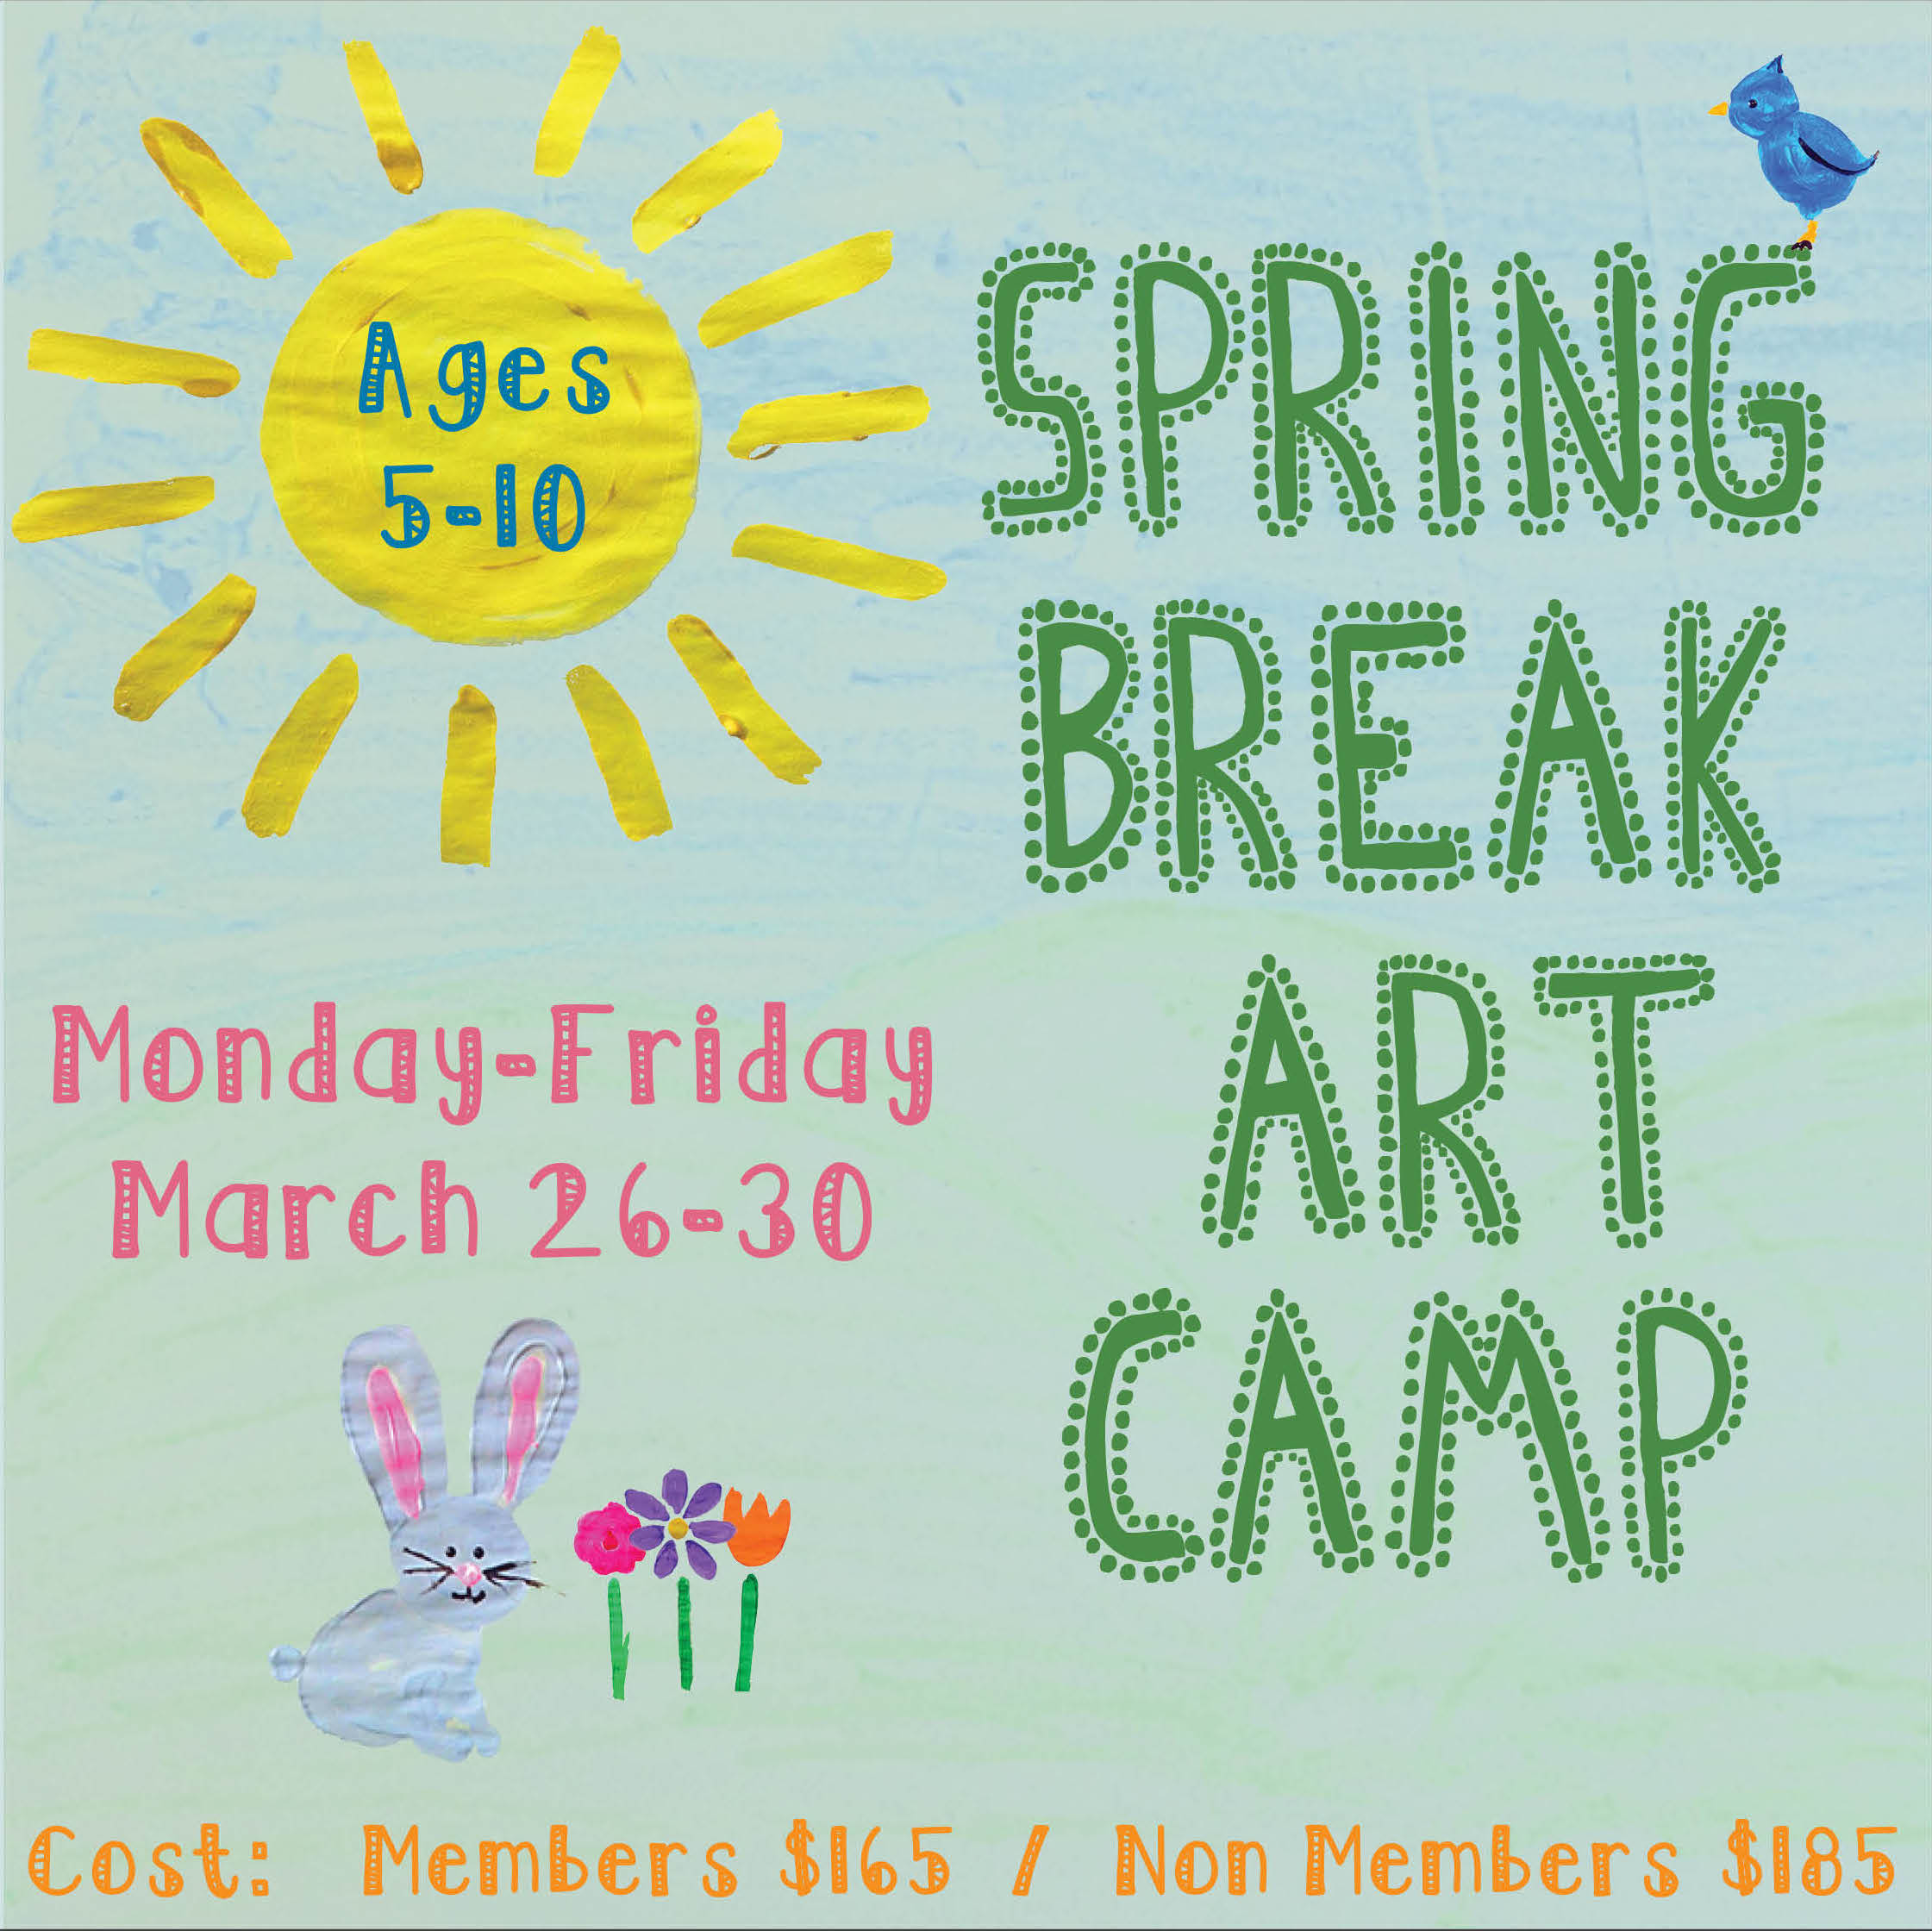 Morean arts center spring break art camp join us for a week long spring break art camp children ages 5 10 will be creating a mixed media art garden filled with flowers unicorns mightylinksfo